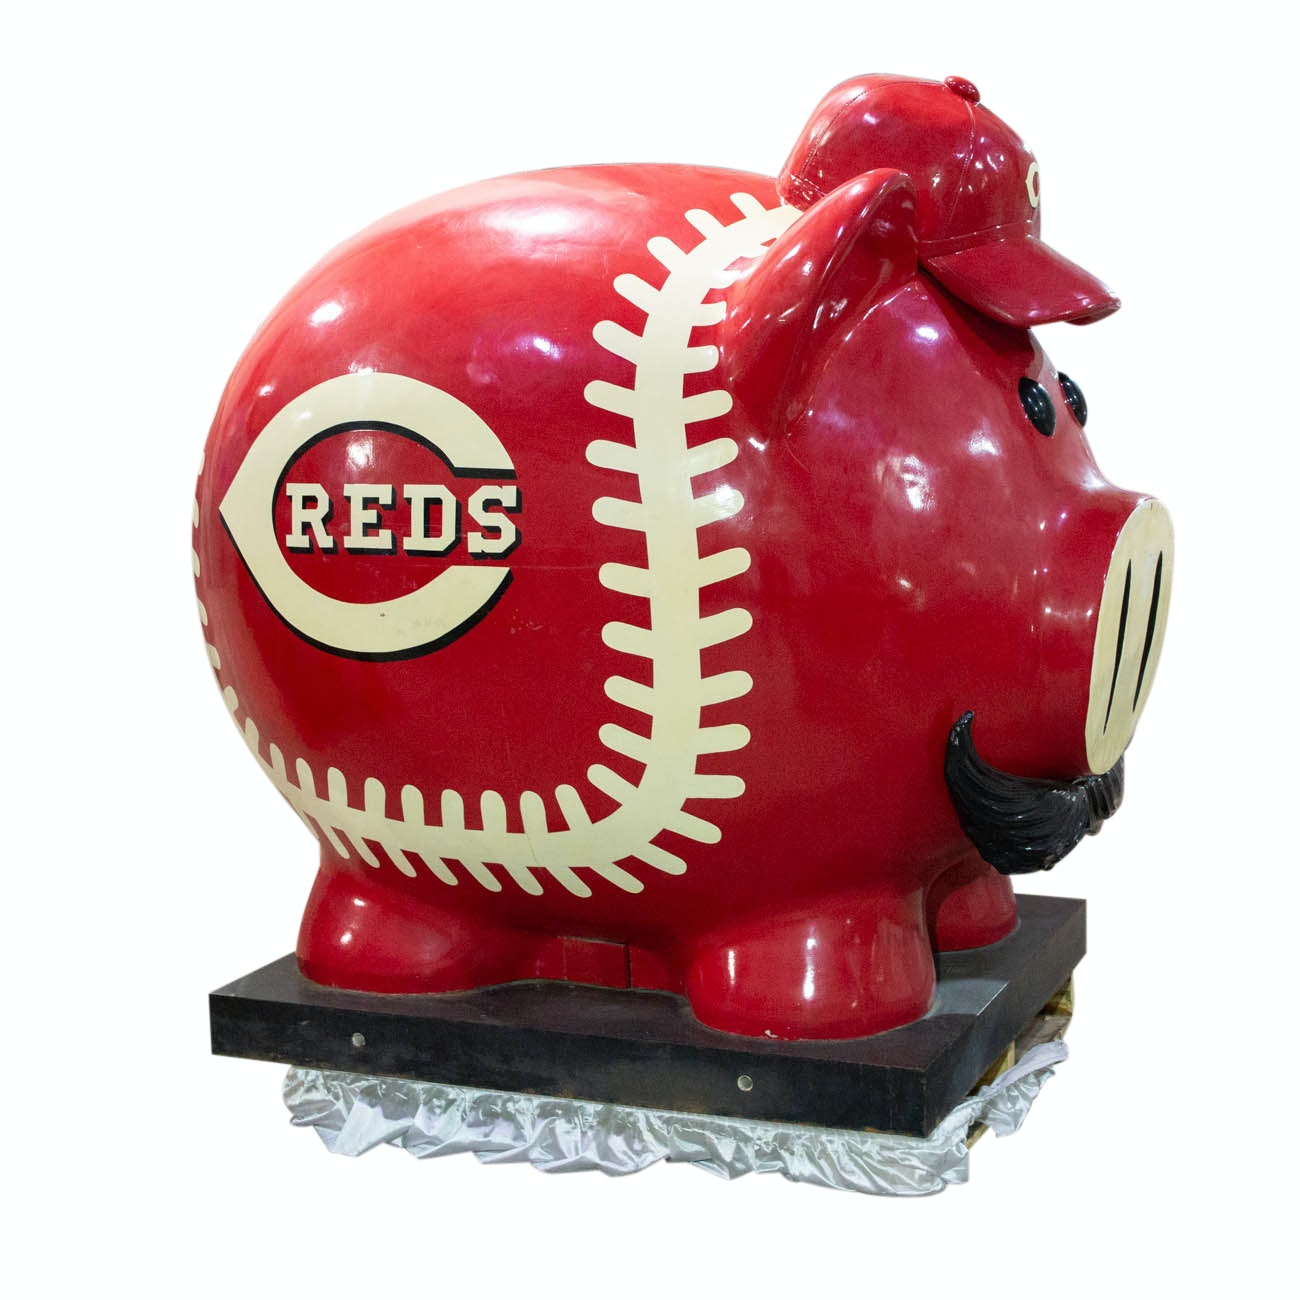 Massive Reds Piggy Bank From Great American Ball Park With Stairs COA